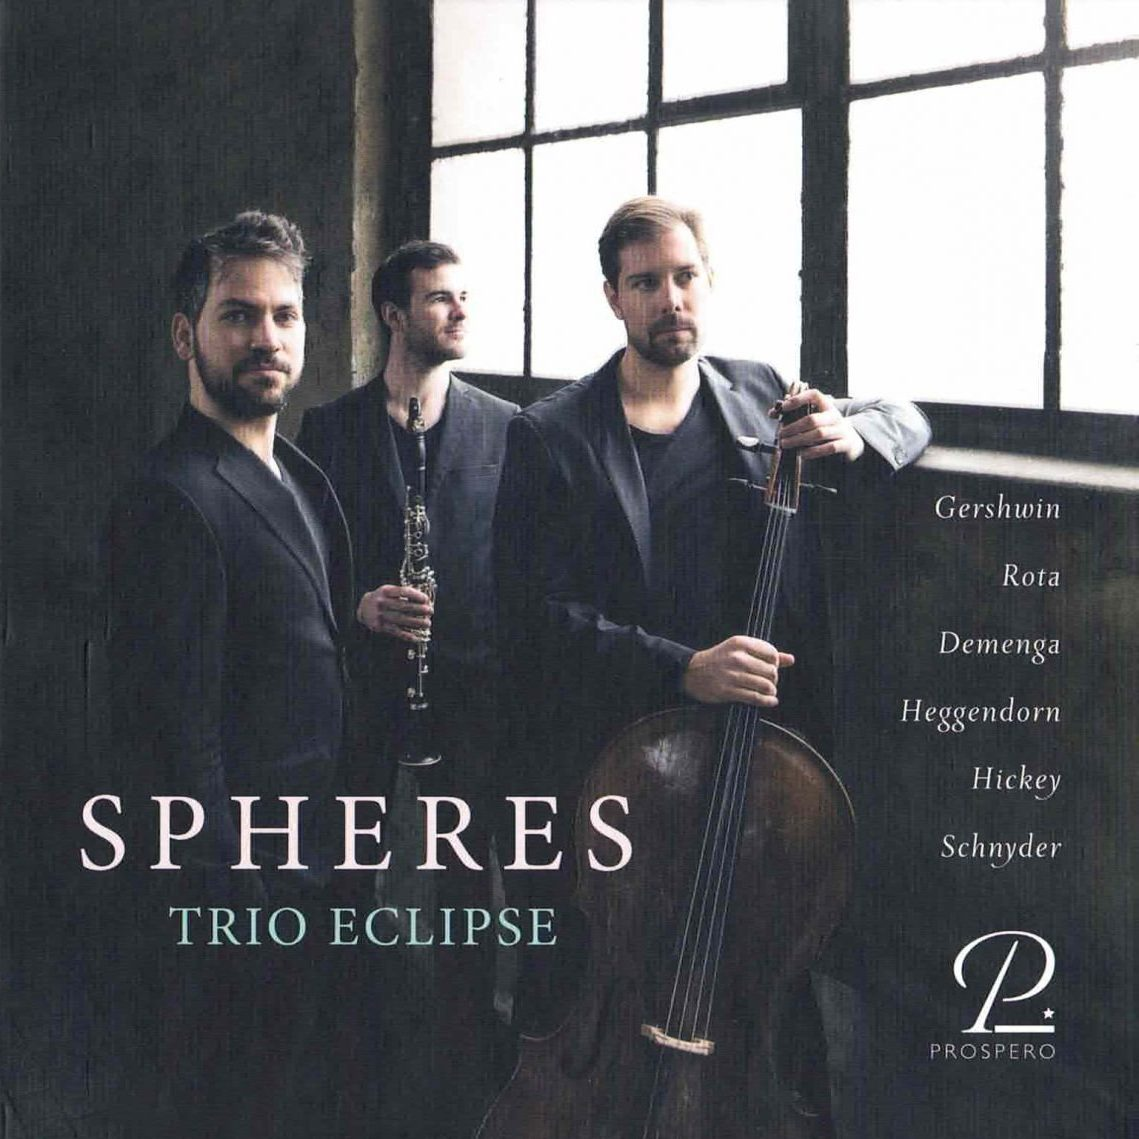 Trio Eclipse – Spheres